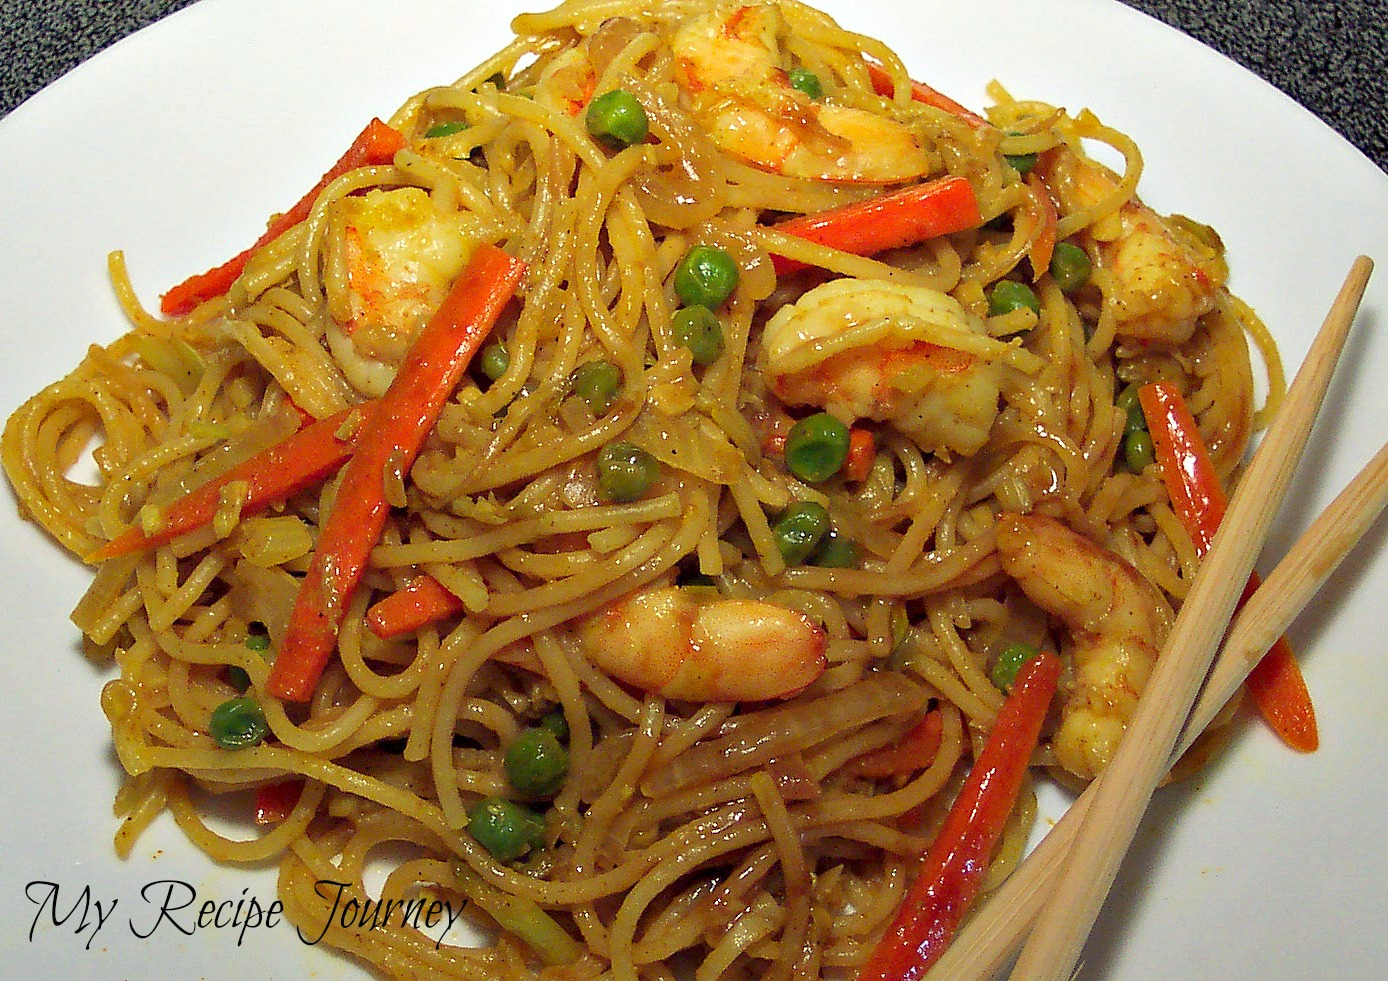 singapore noodles with shrimp 1 2 lb thin spaghetti or rice noodles 1 ...